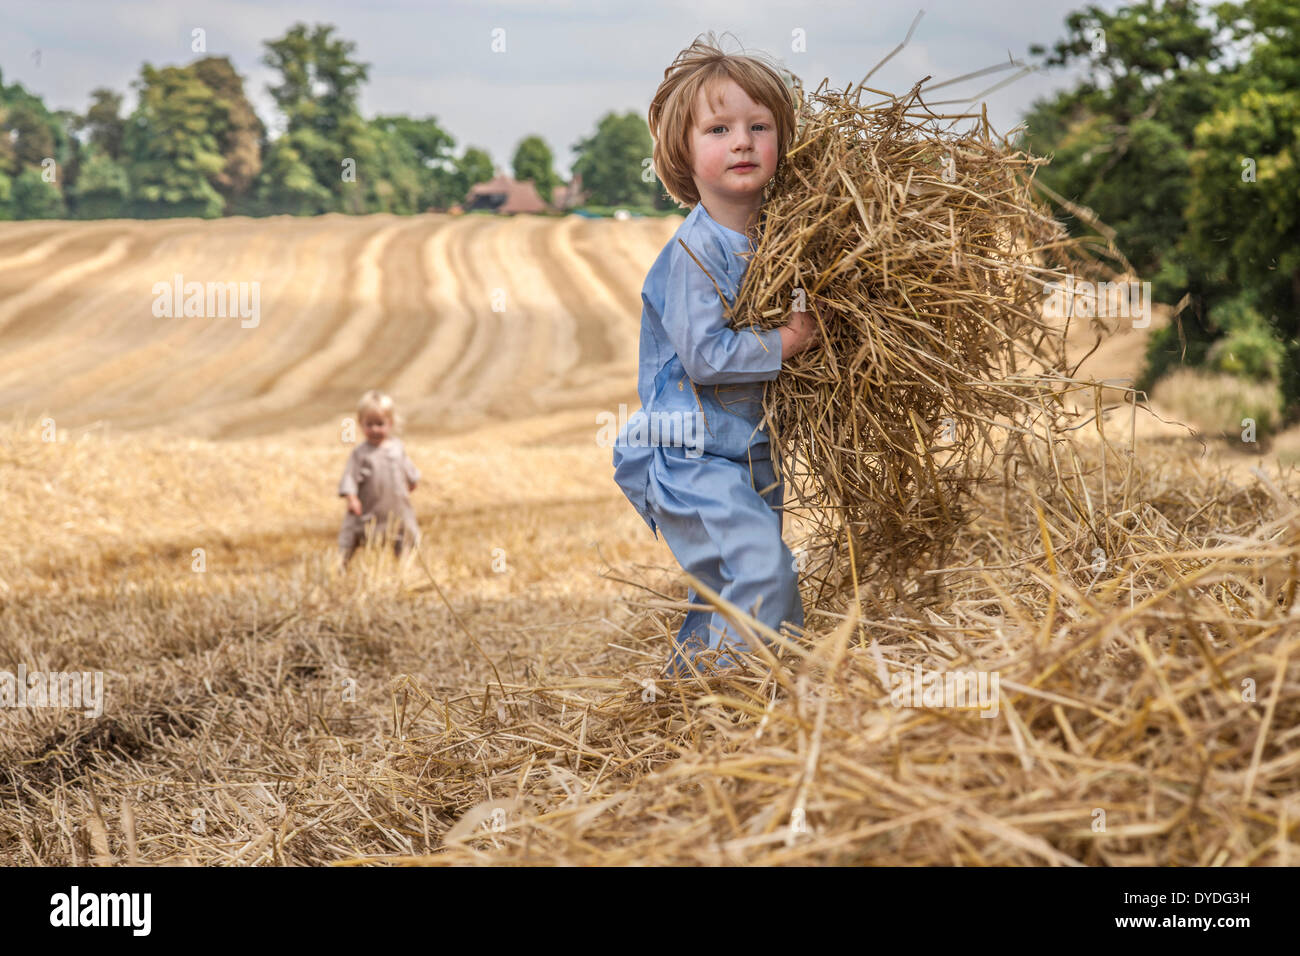 A two year old boy running in a field collecting straw. - Stock Image